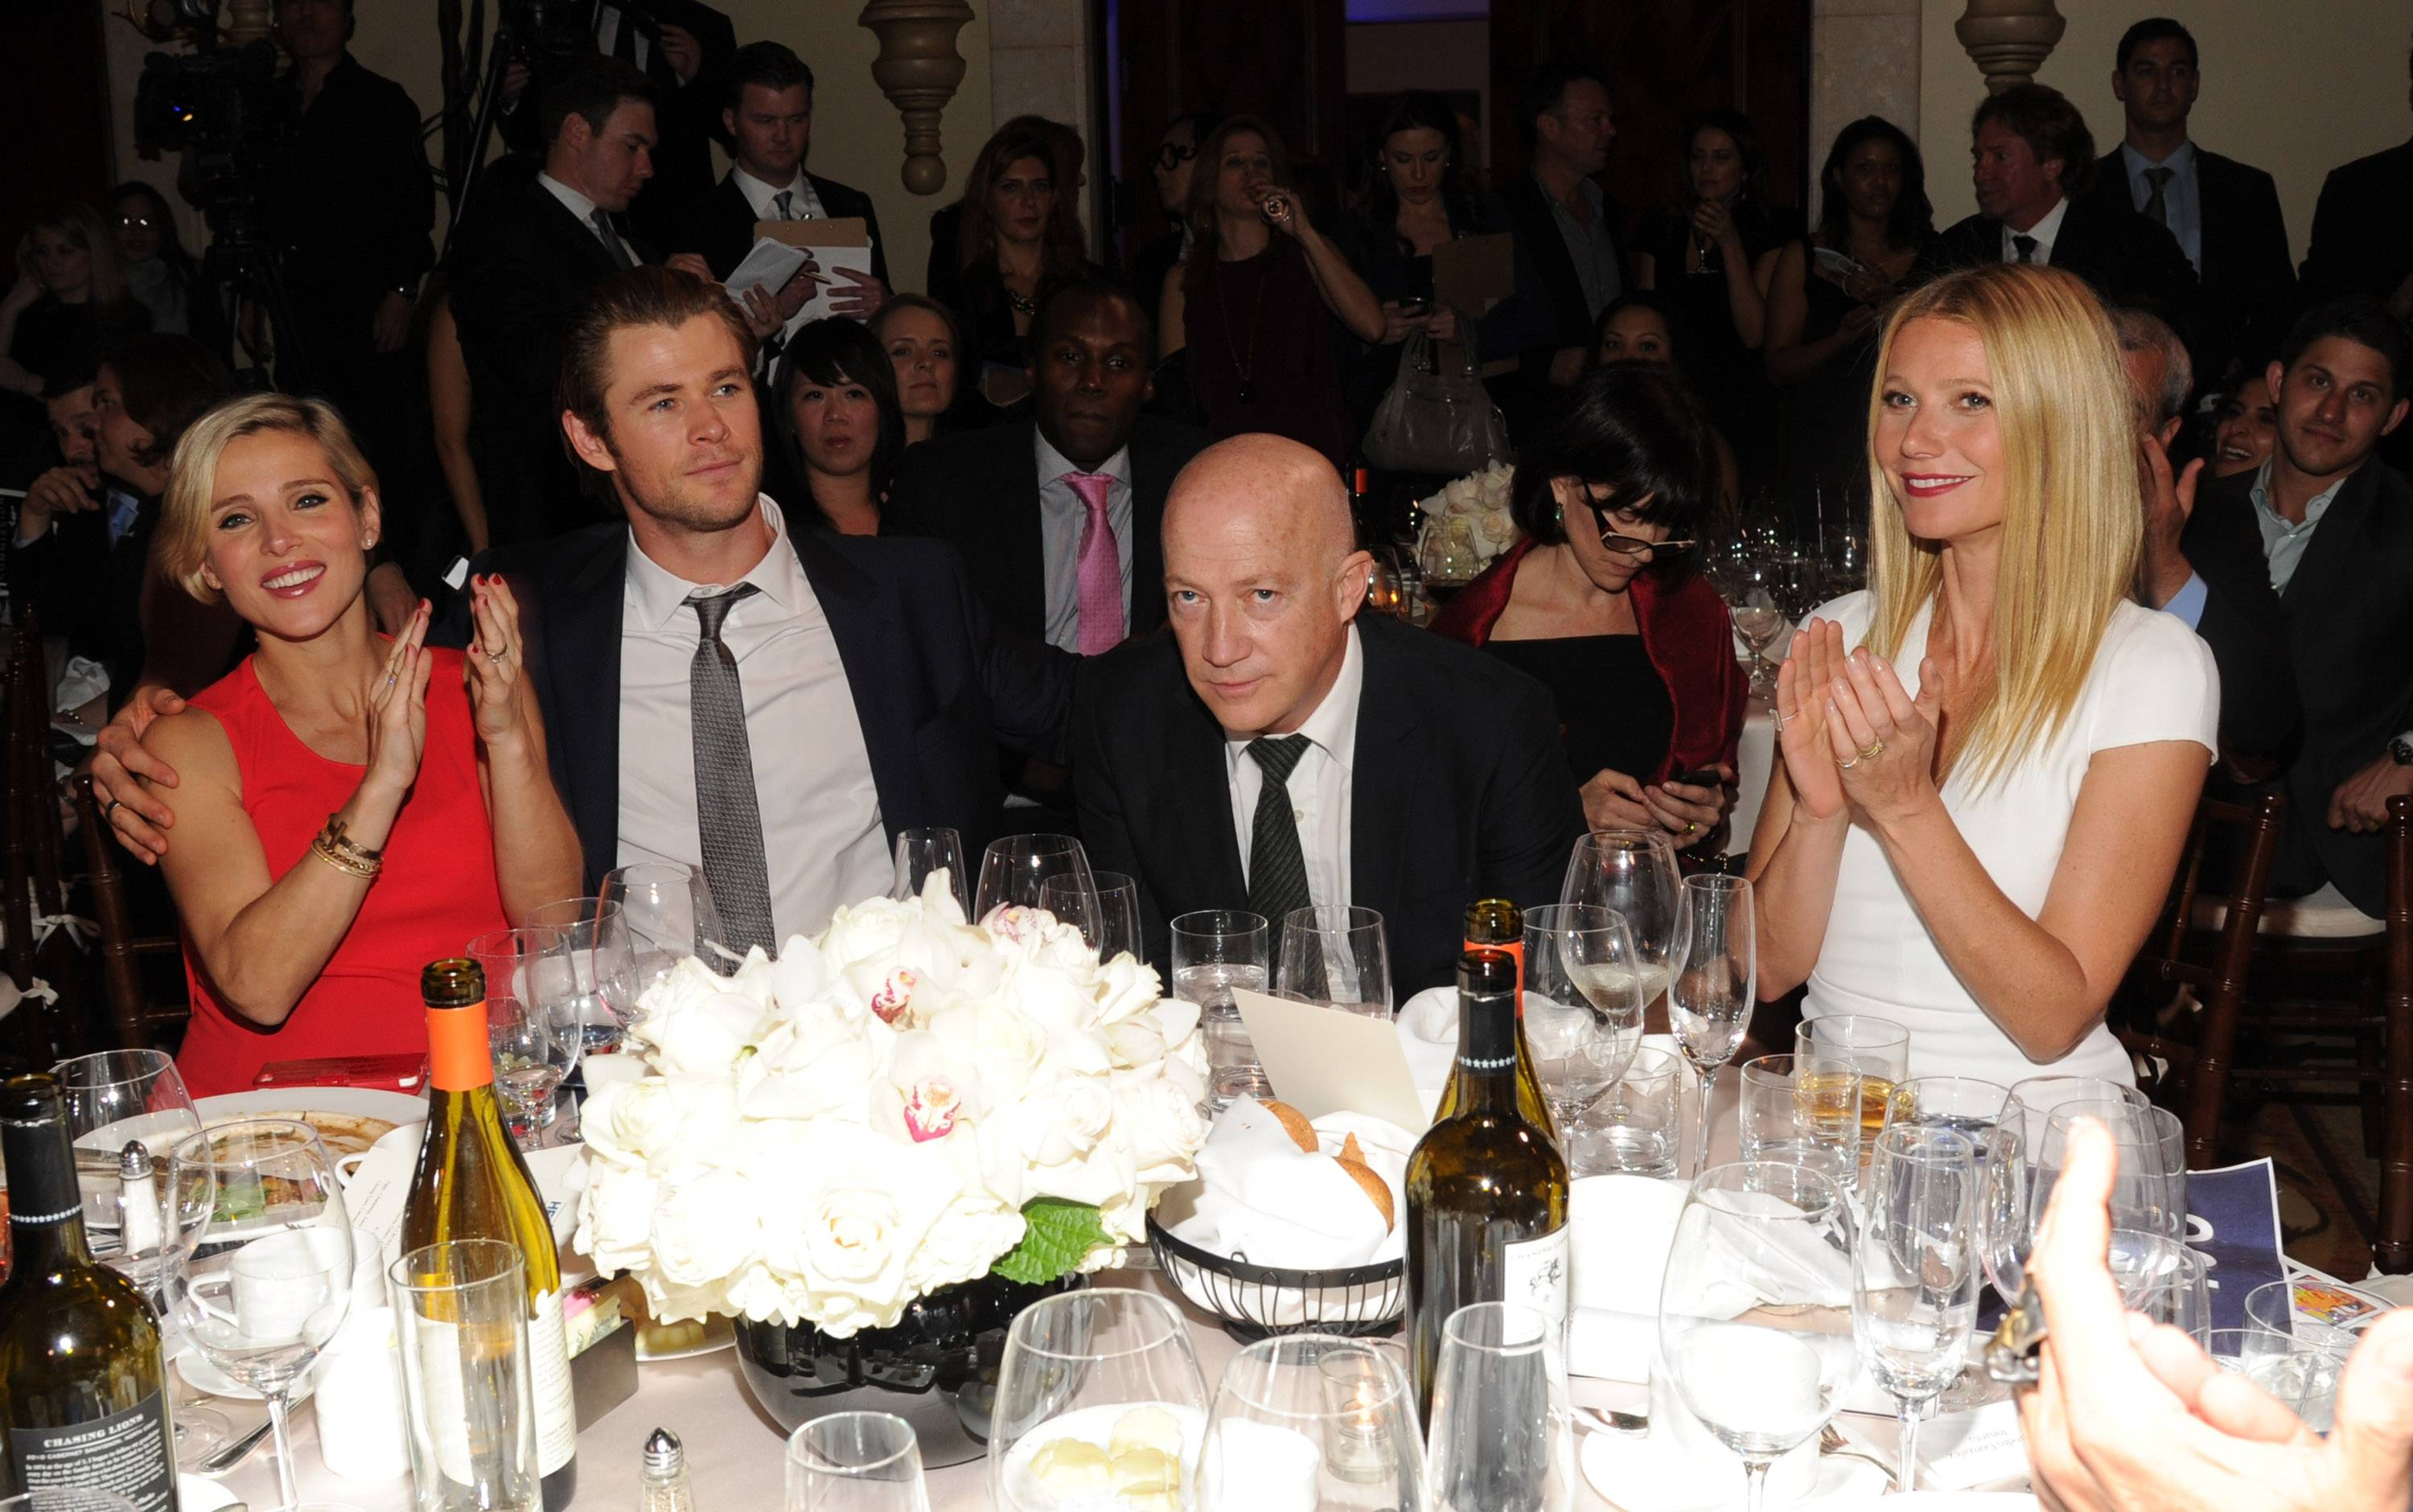 3rd Annual Sean Penn & Friends HELP HAITI HOME Gala Benefiting J/P HRO Presented By Giorgio Armani - Inside